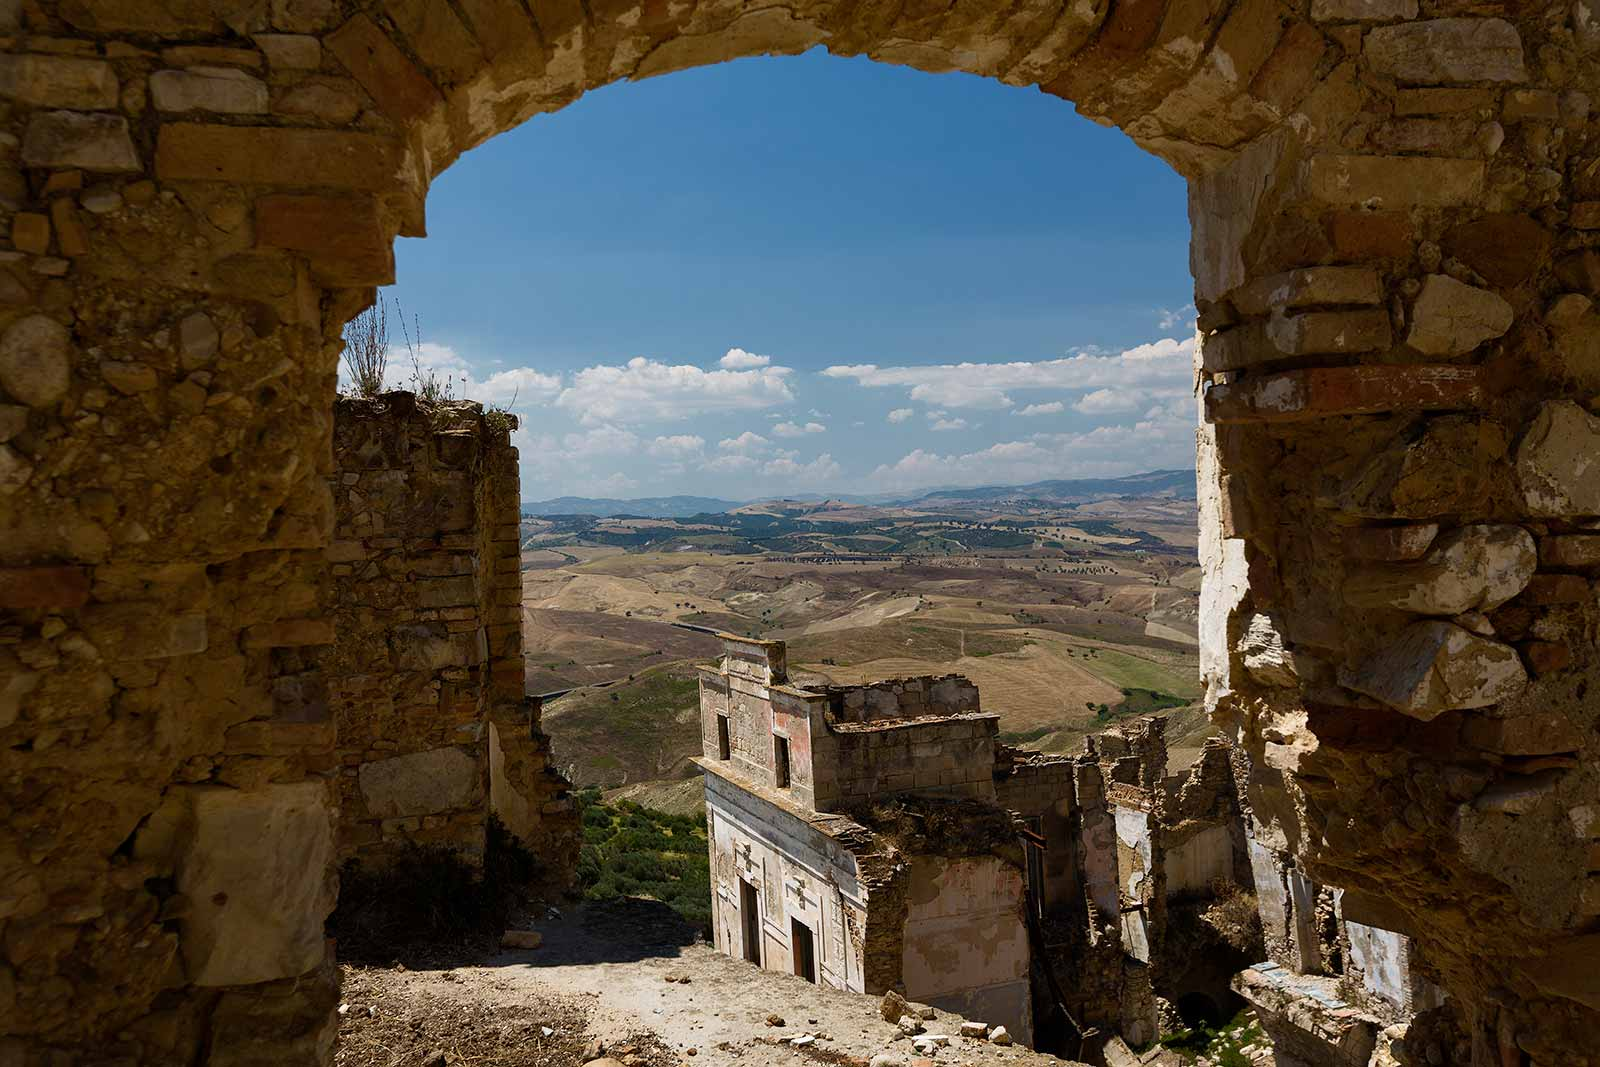 Craco was built upon a hillside with the safety of its population in mind. Today, the views over the surround region are absolutely stunning!